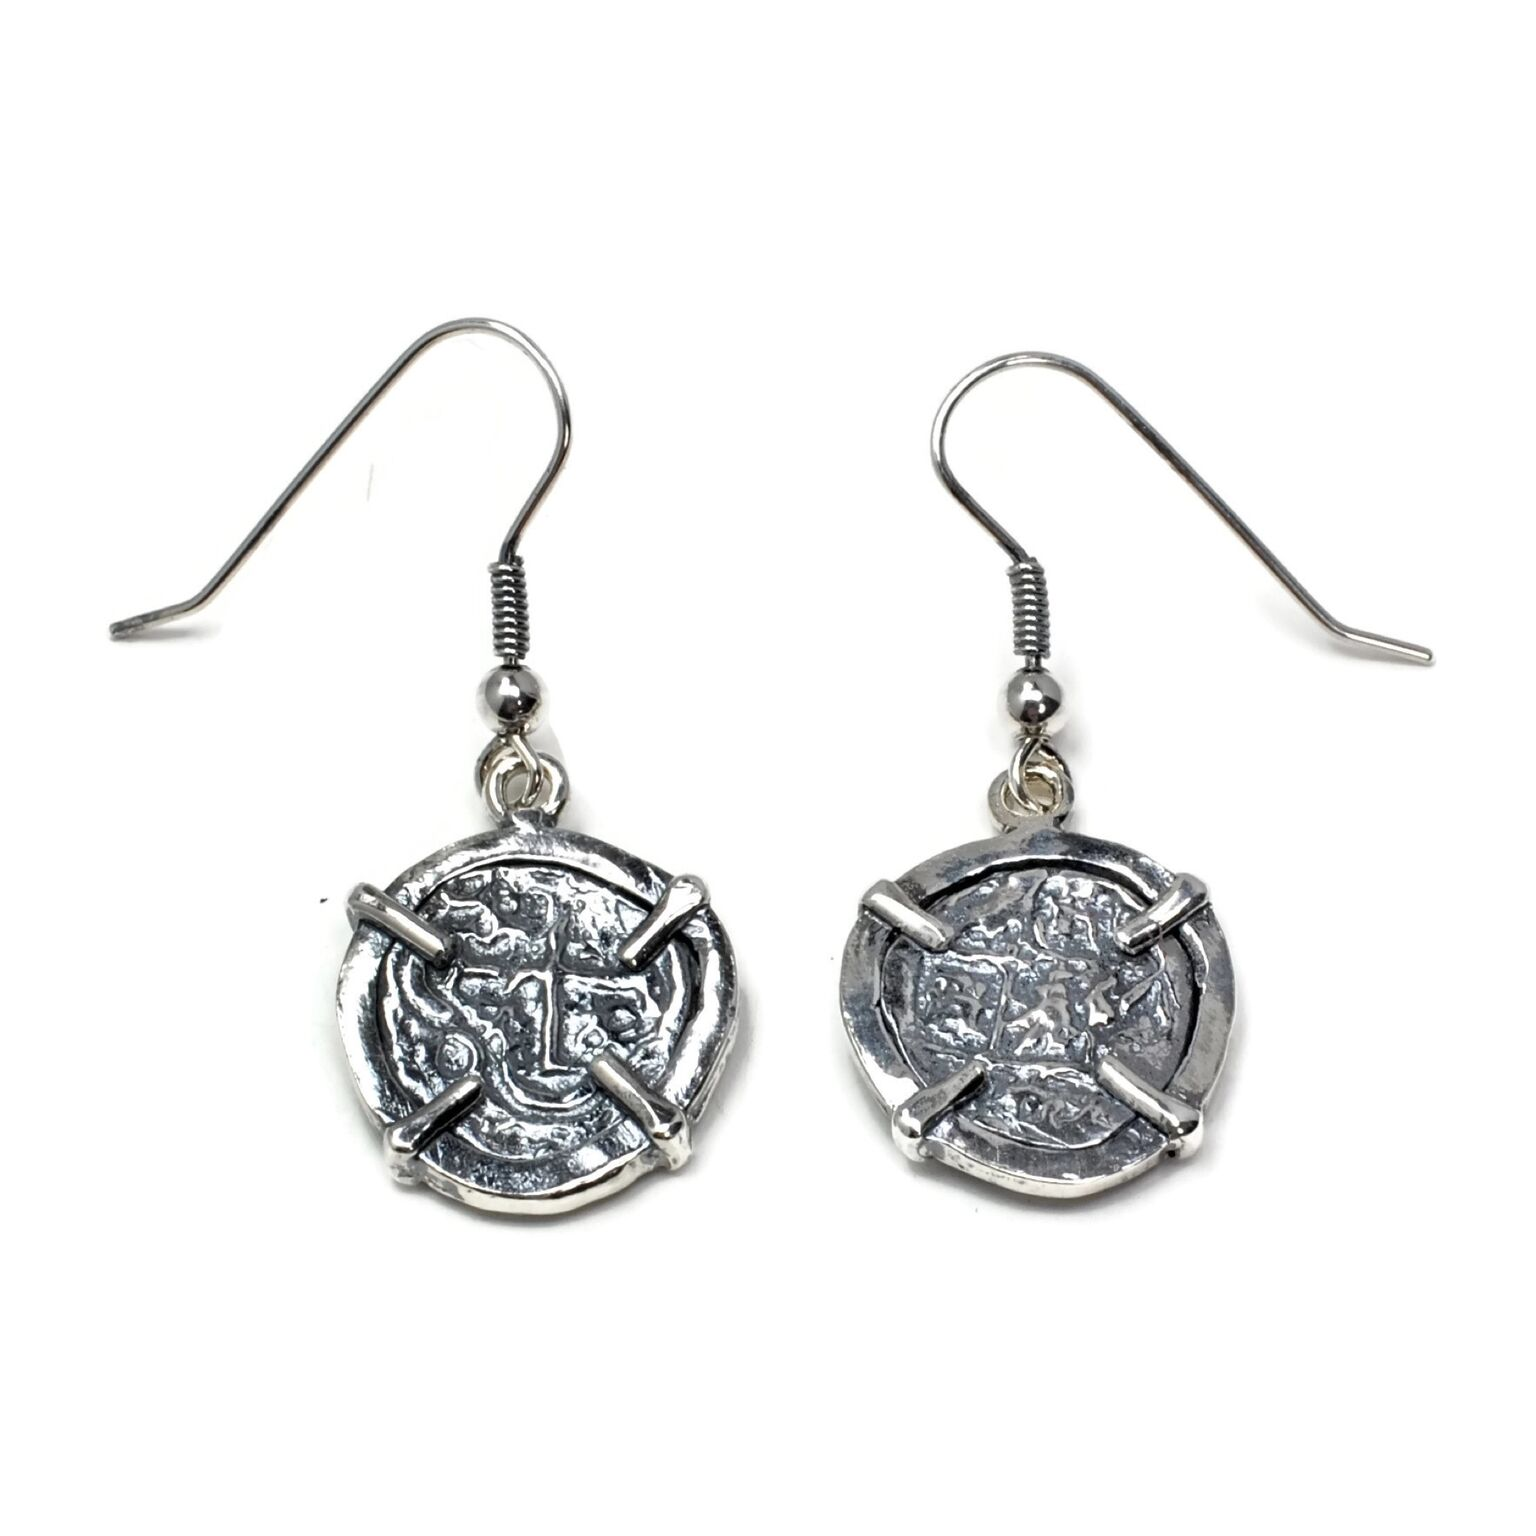 Coin Dangly Earrings 3_preview.jpeg